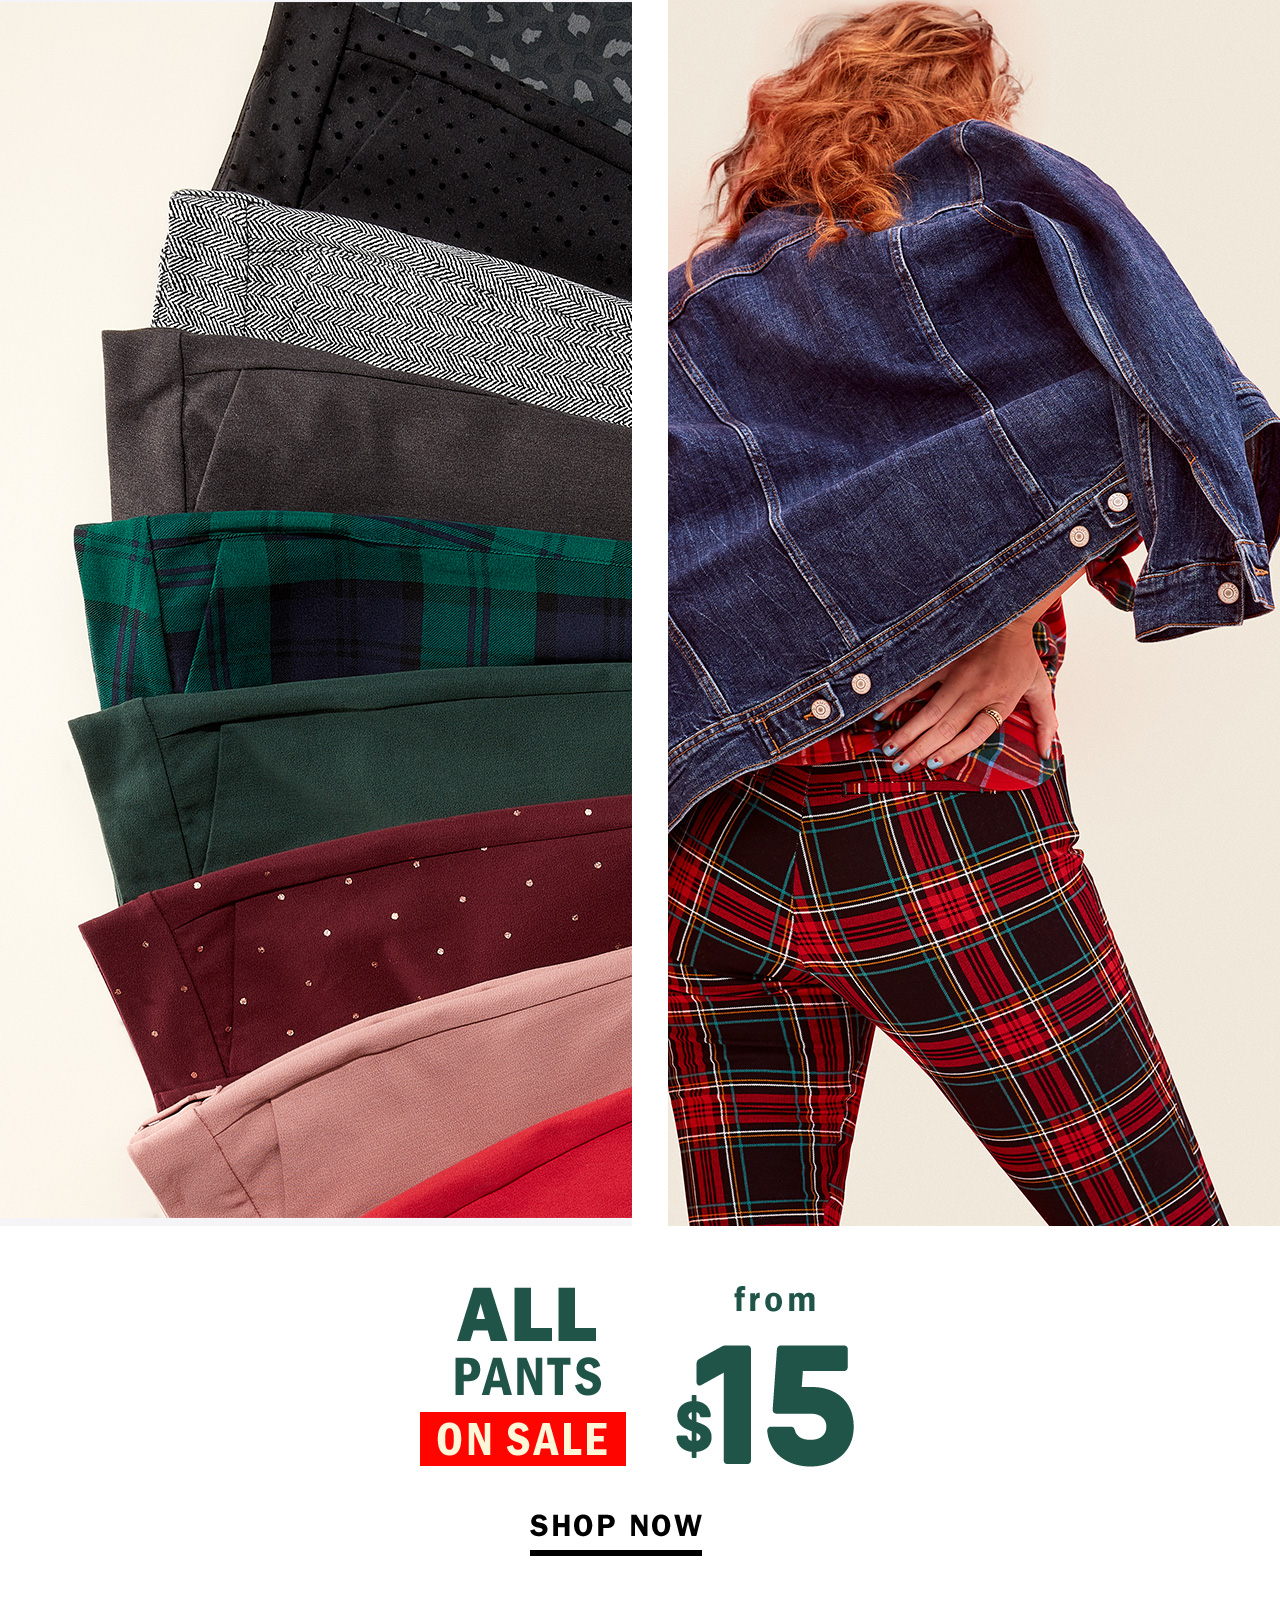 ALL PANTS ON SALE